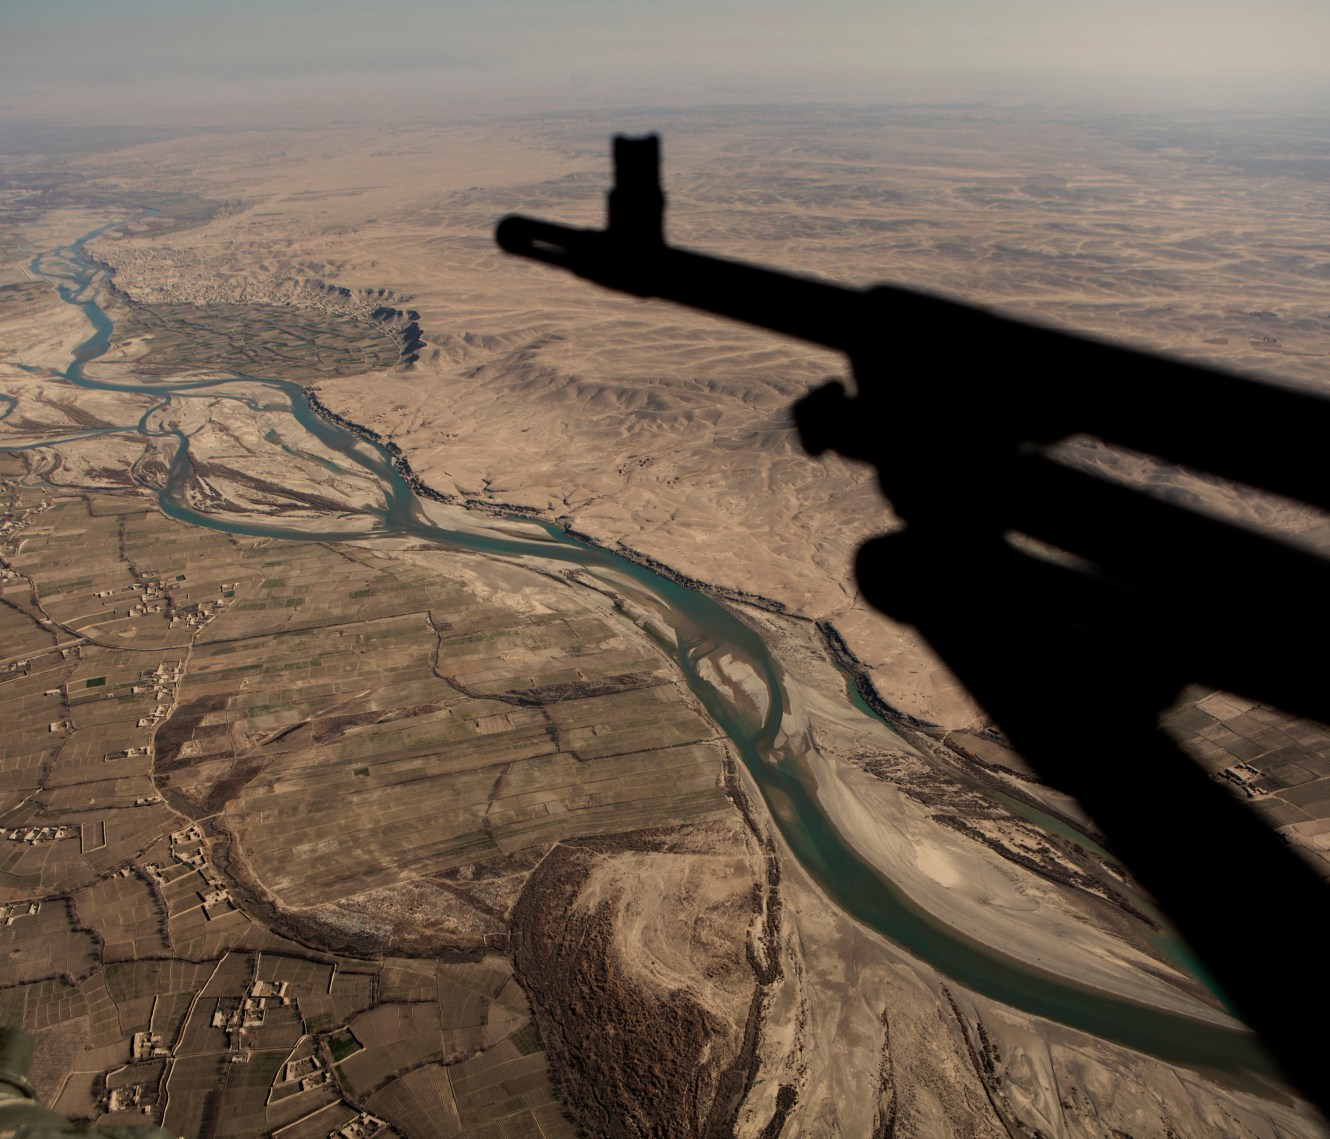 The gunners view from a Danish military helicopter as it flies over the Helmand River. In June 2011, President Obama announced his plan to begin the withdrawal of US troops from Afghanistan, but there is currently no end date for the war in the troubled country. Helmand is the largest province in Afghanistan, and the heart of the war against terror. Commanders on the ground have described the situation as the most brutal conflict the British Army has been involved in since the Korean War. Much of the fighting between NATO and Taliban forces is taking place in this province and Helmand is a true Taliban stronghold. The Helmand River flows through the mainly desert region. With these images I am trying to show a softer side to this troubled area of Afghanistan.